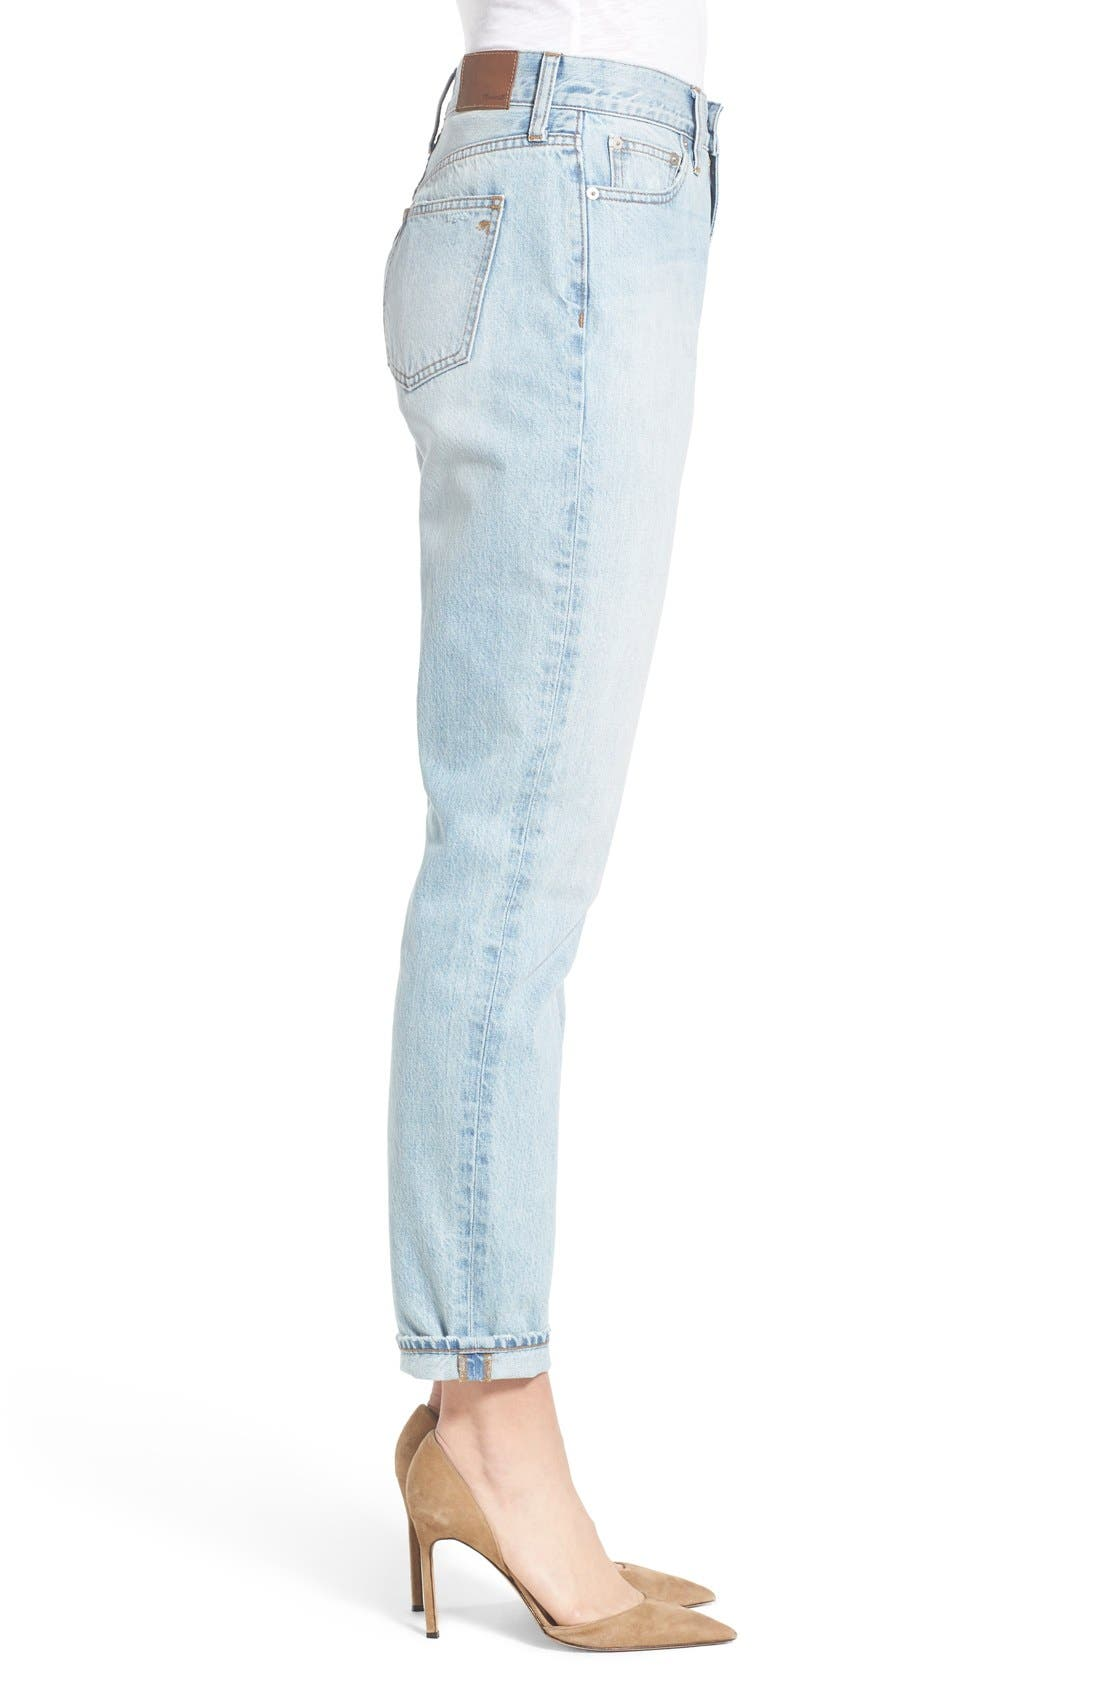 'Perfect Summer' High Rise Ankle Jeans,                             Alternate thumbnail 4, color,                             Fitzgerald Wash